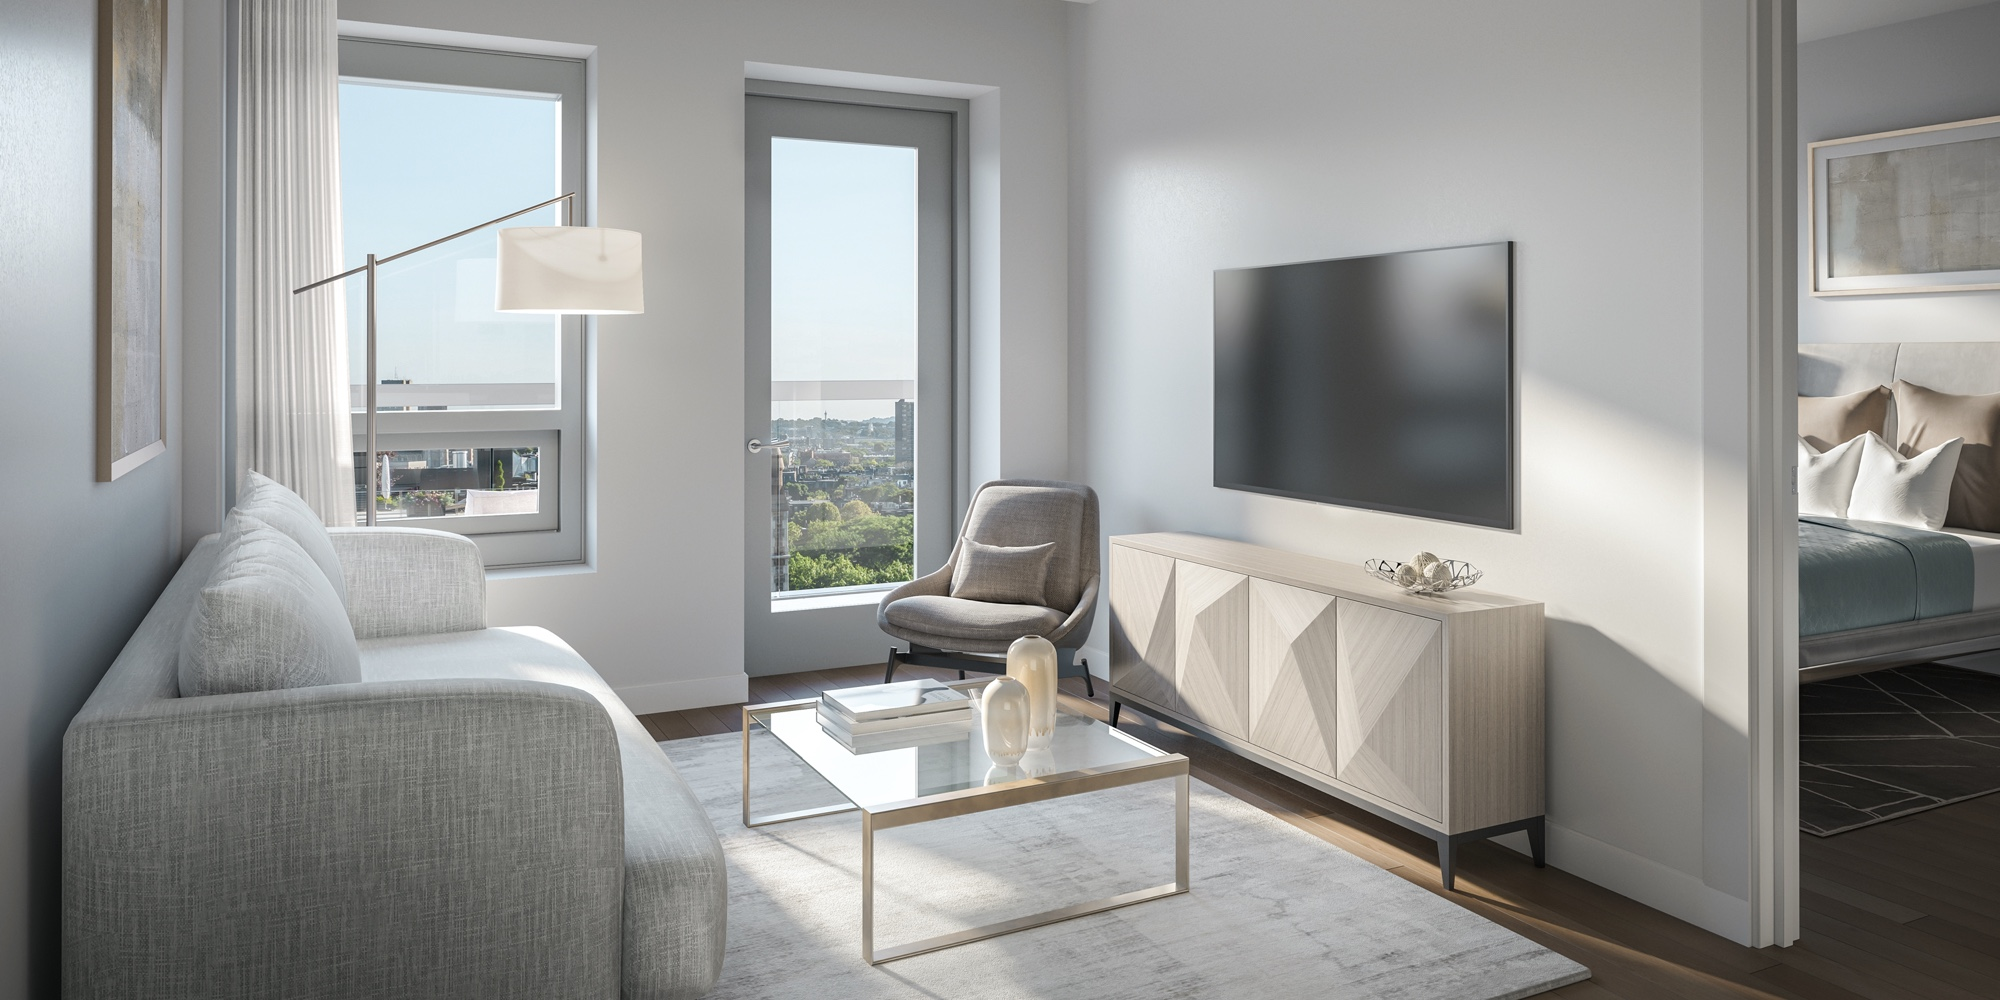 Living space in a 100 Shawmut unit with patio overlooking downtown Boston